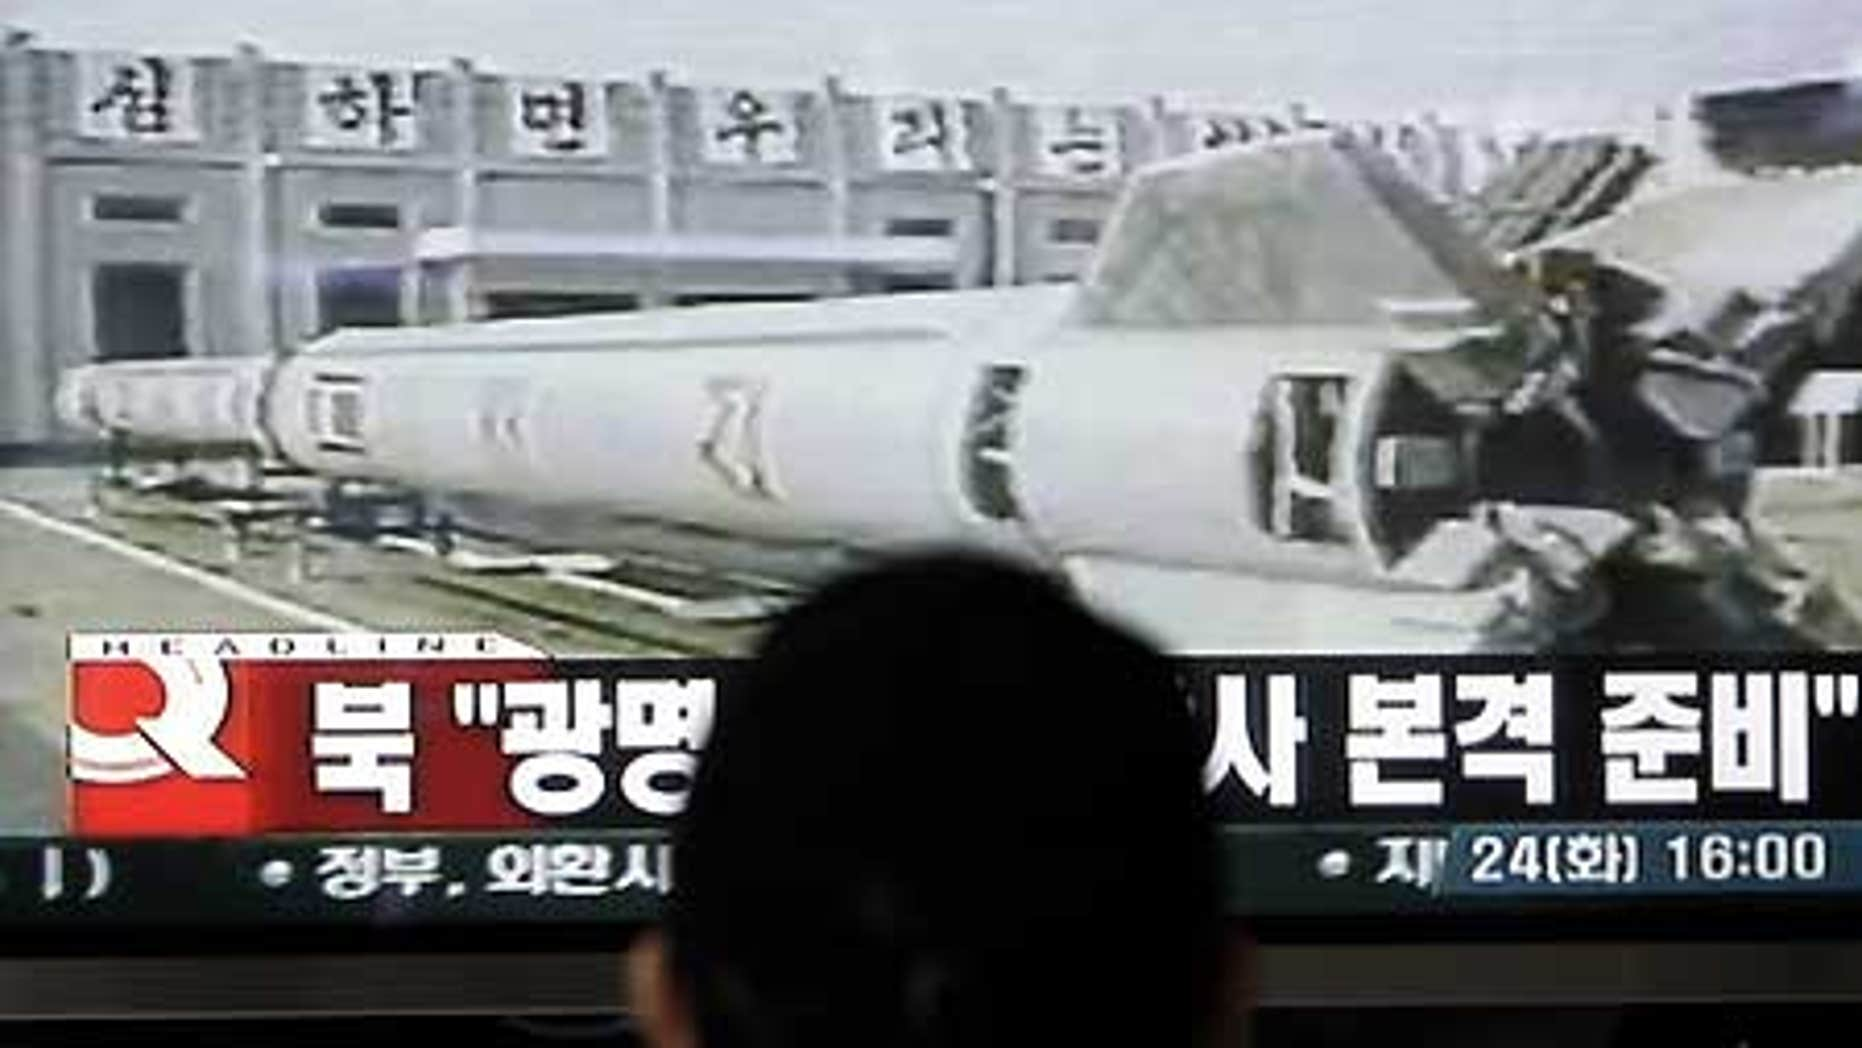 Feb. 24: A South Korean watches television news showing a file image of North Korea's missile, at a railway station in Seoul.